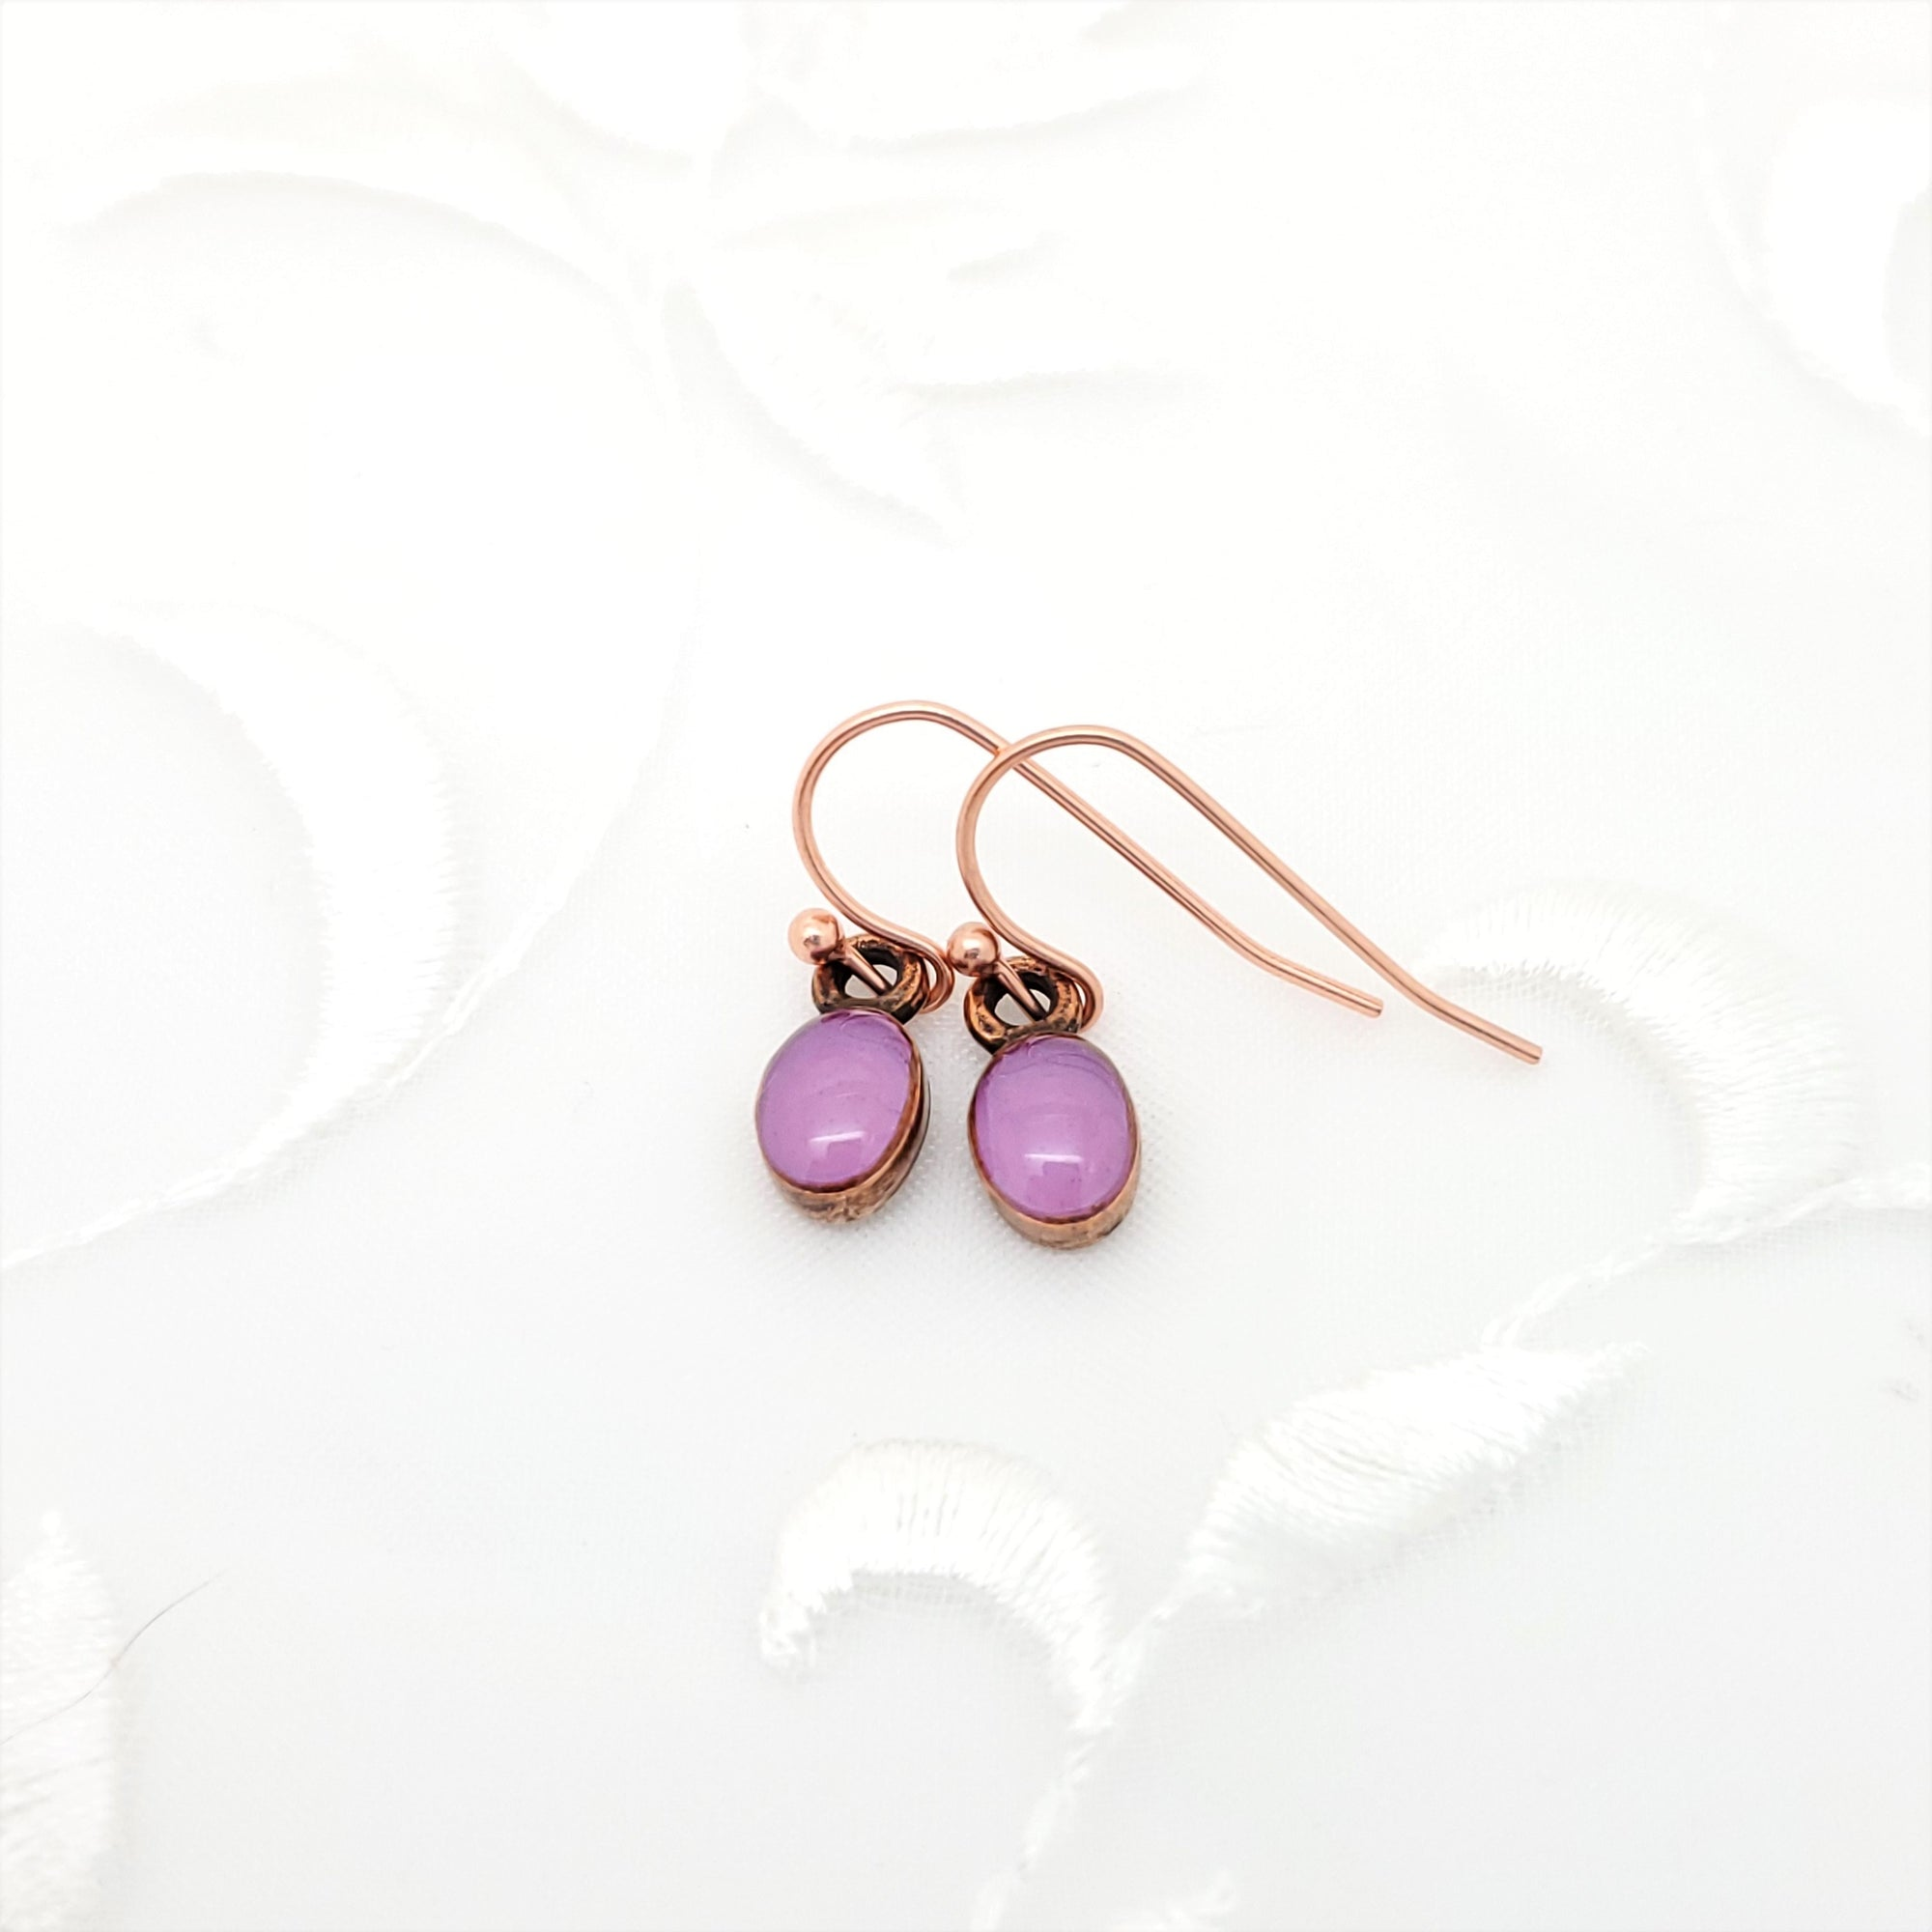 Antique Copper Tiny Oval Earrings with Purple Resin